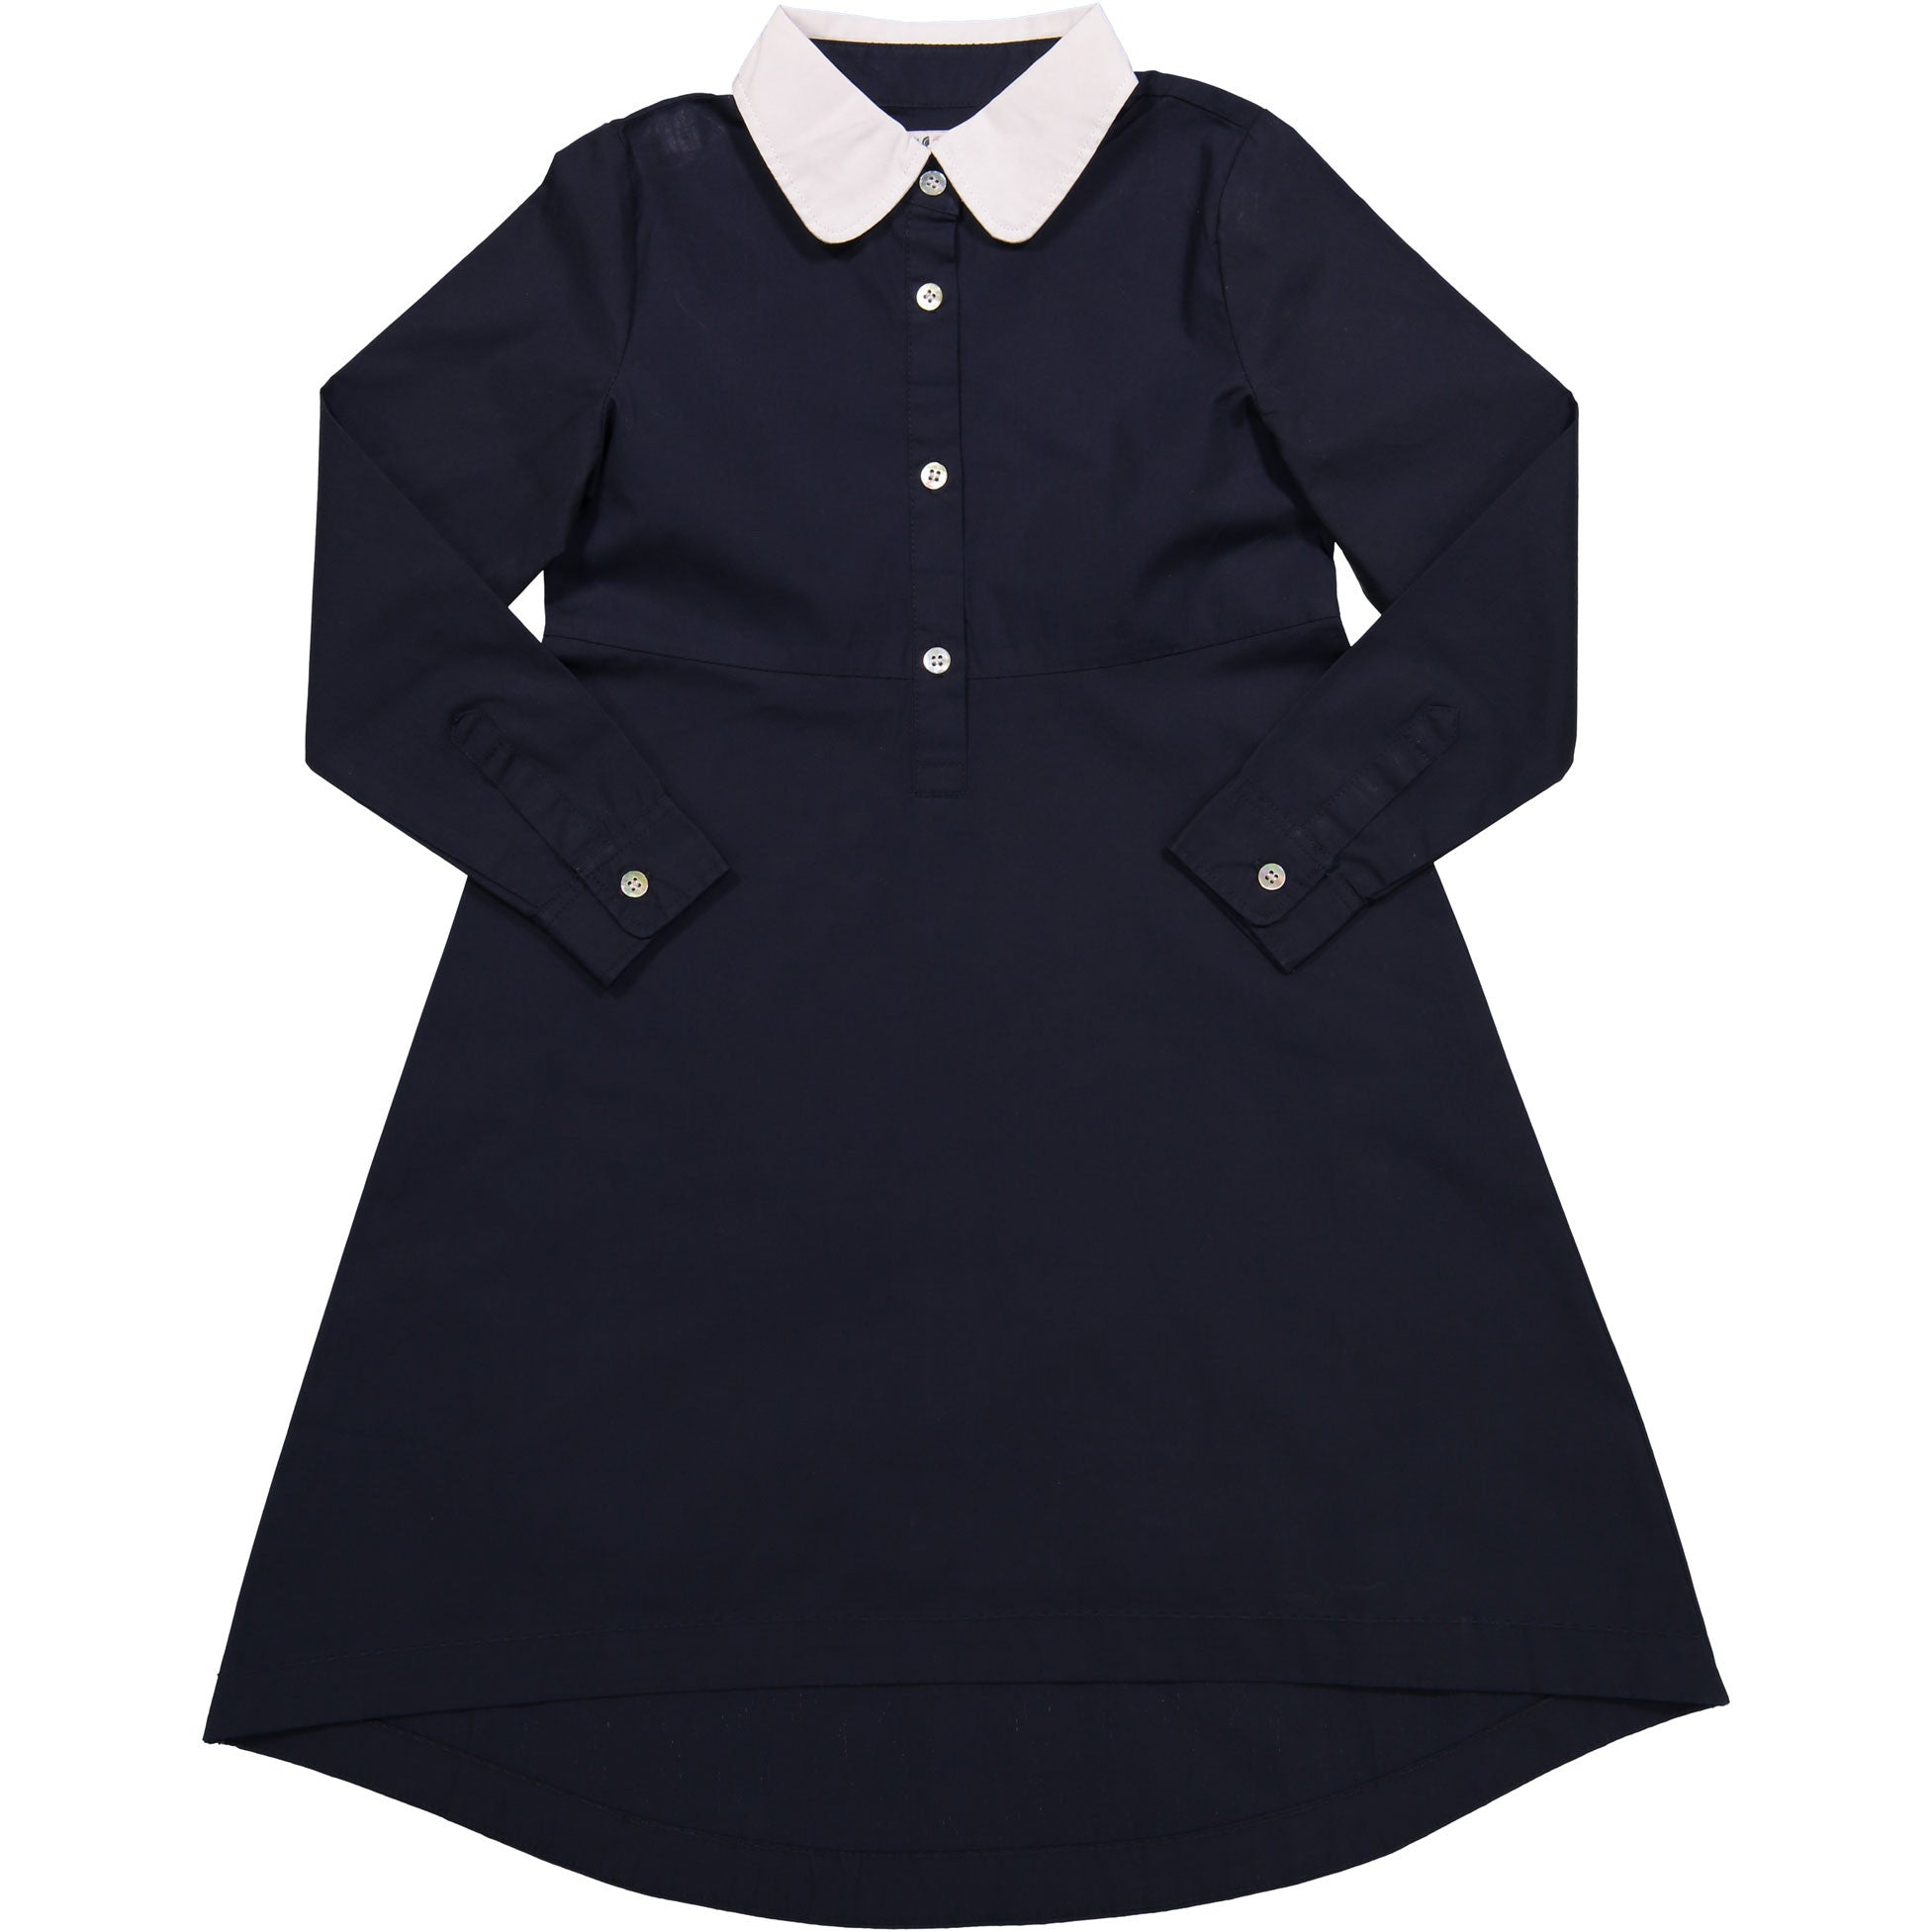 Coco Blanc Midnight Blue Shirt Dress - Ladida